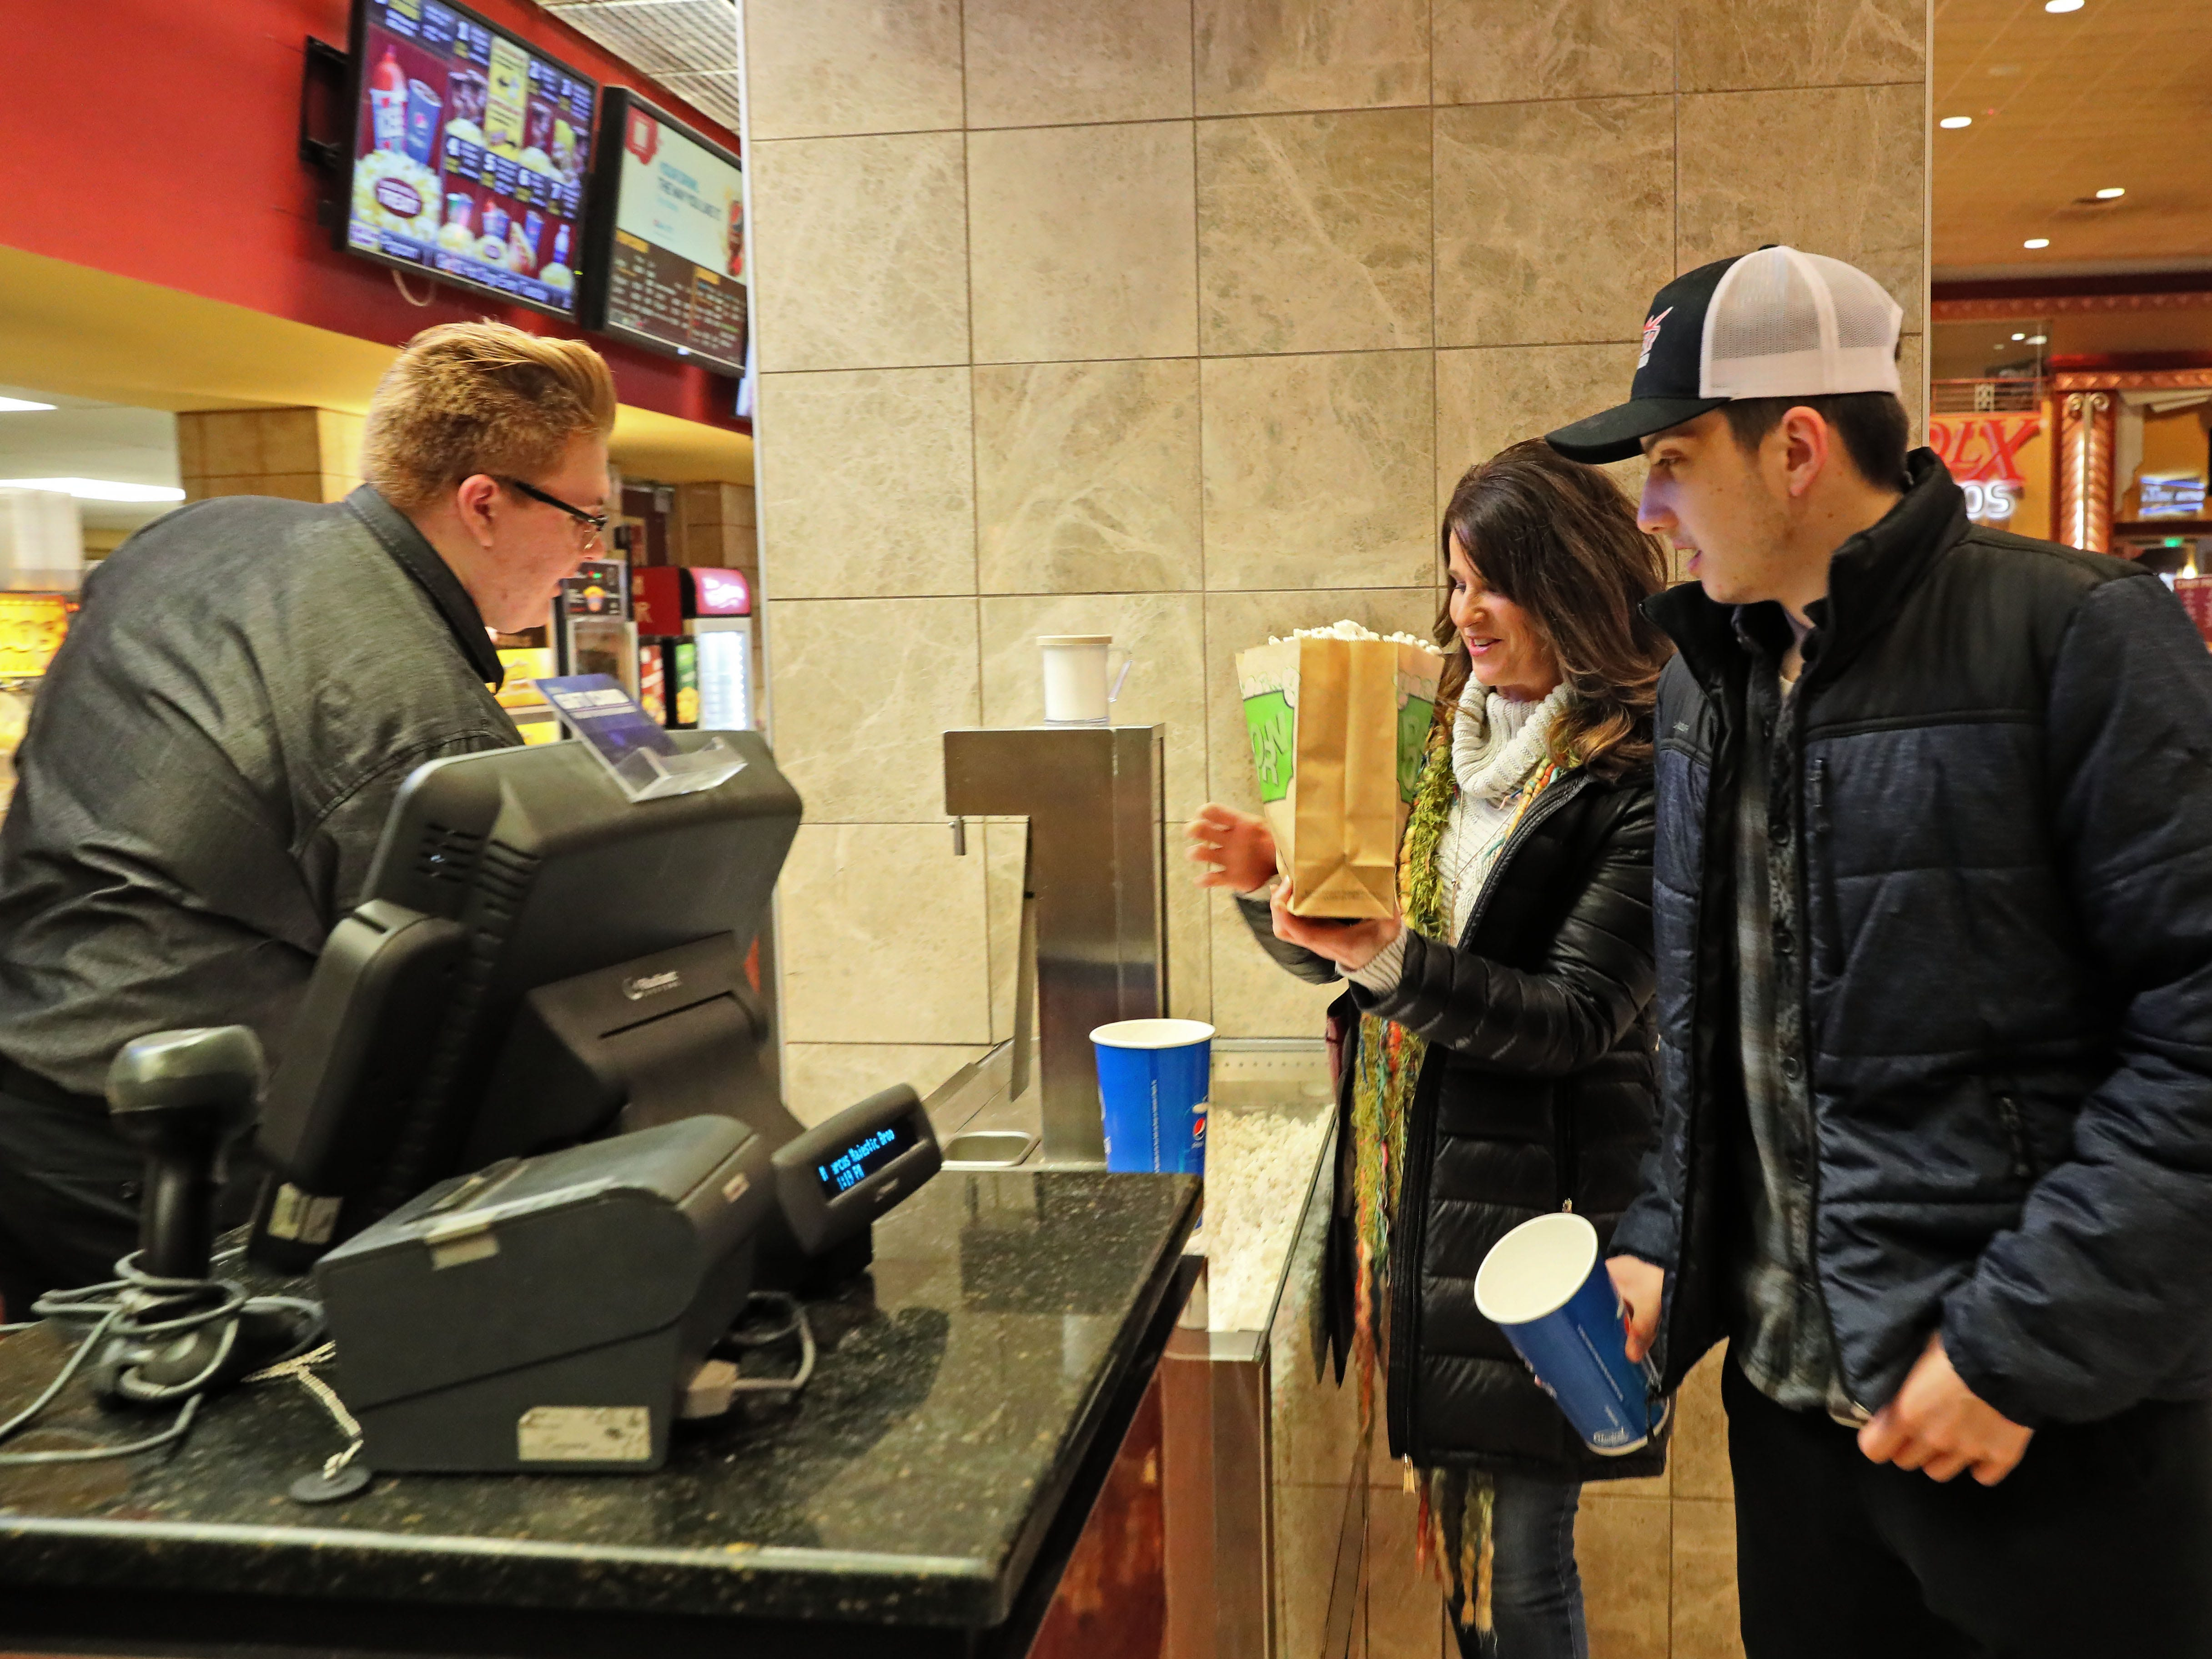 Lisa Daury of Hartland and her son Jon Daury, who is home on break from the University of Wisconsin-Madison, get some popcorn before their movie from Jordyn Kowalke at the Marcus Majestic Cinema, 770 Springdale Road in Brookfield.